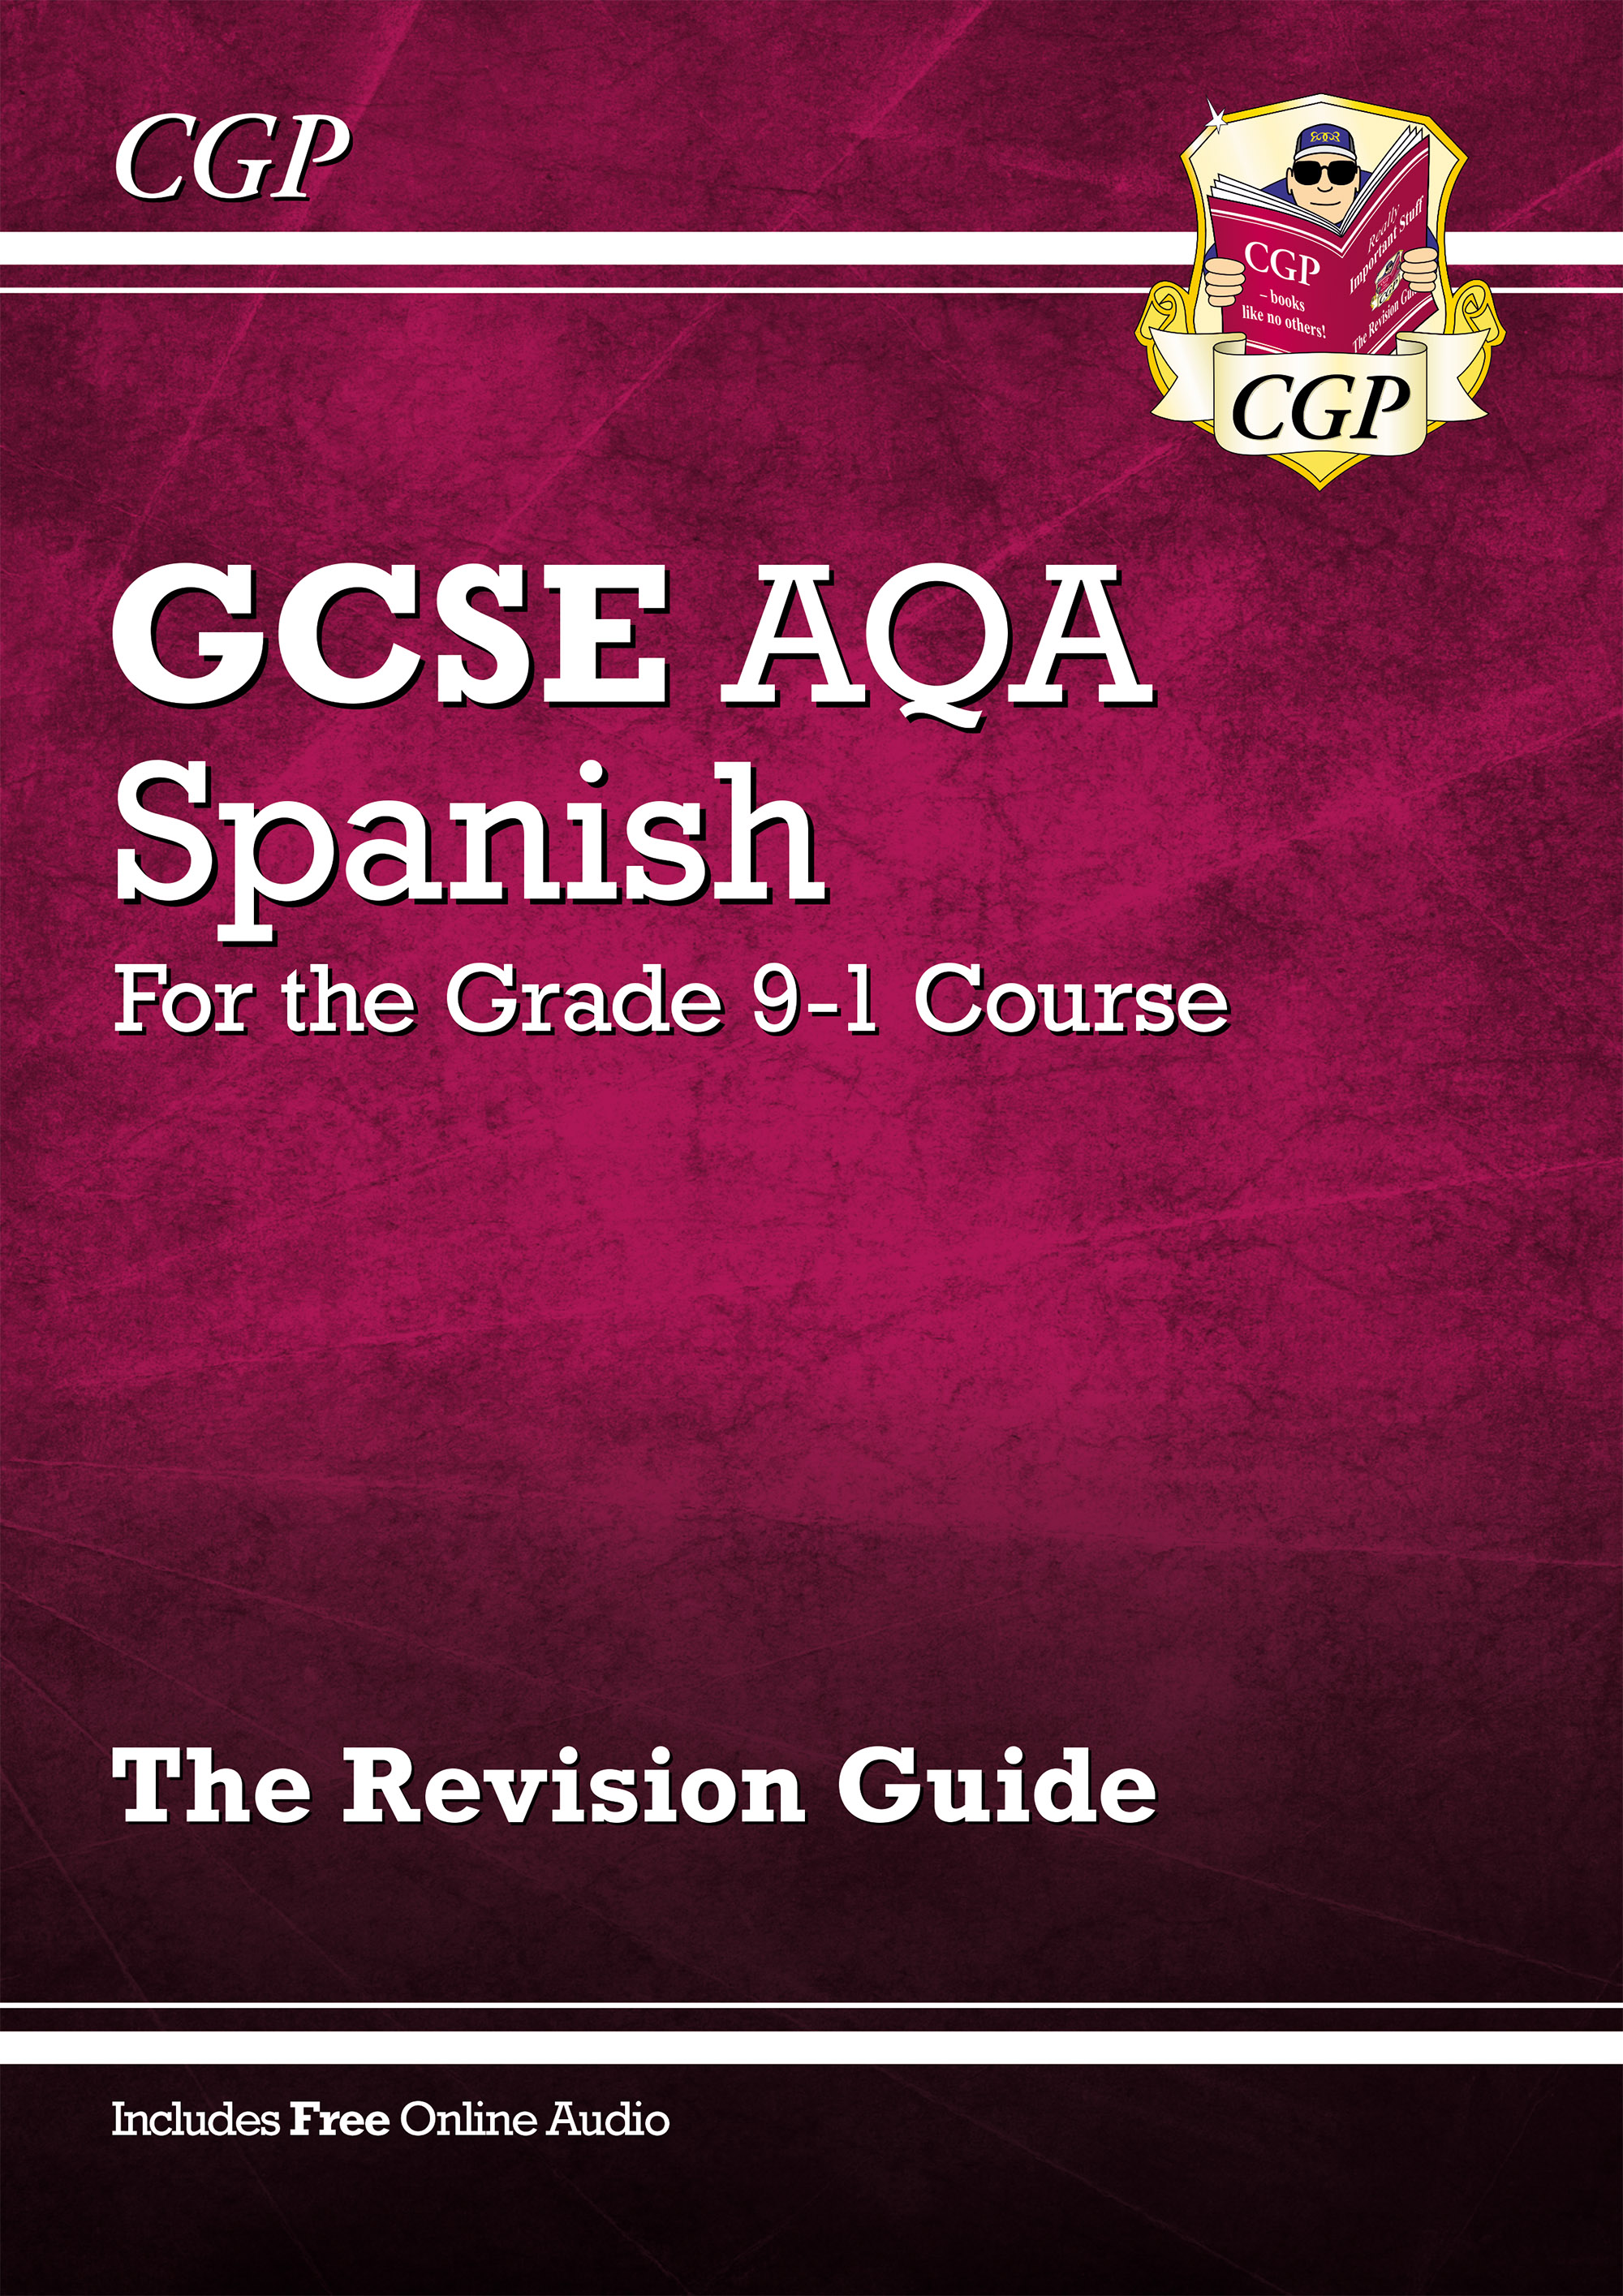 SPAR41DK - New GCSE Spanish AQA Revision Guide - for the Grade 9-1 Course